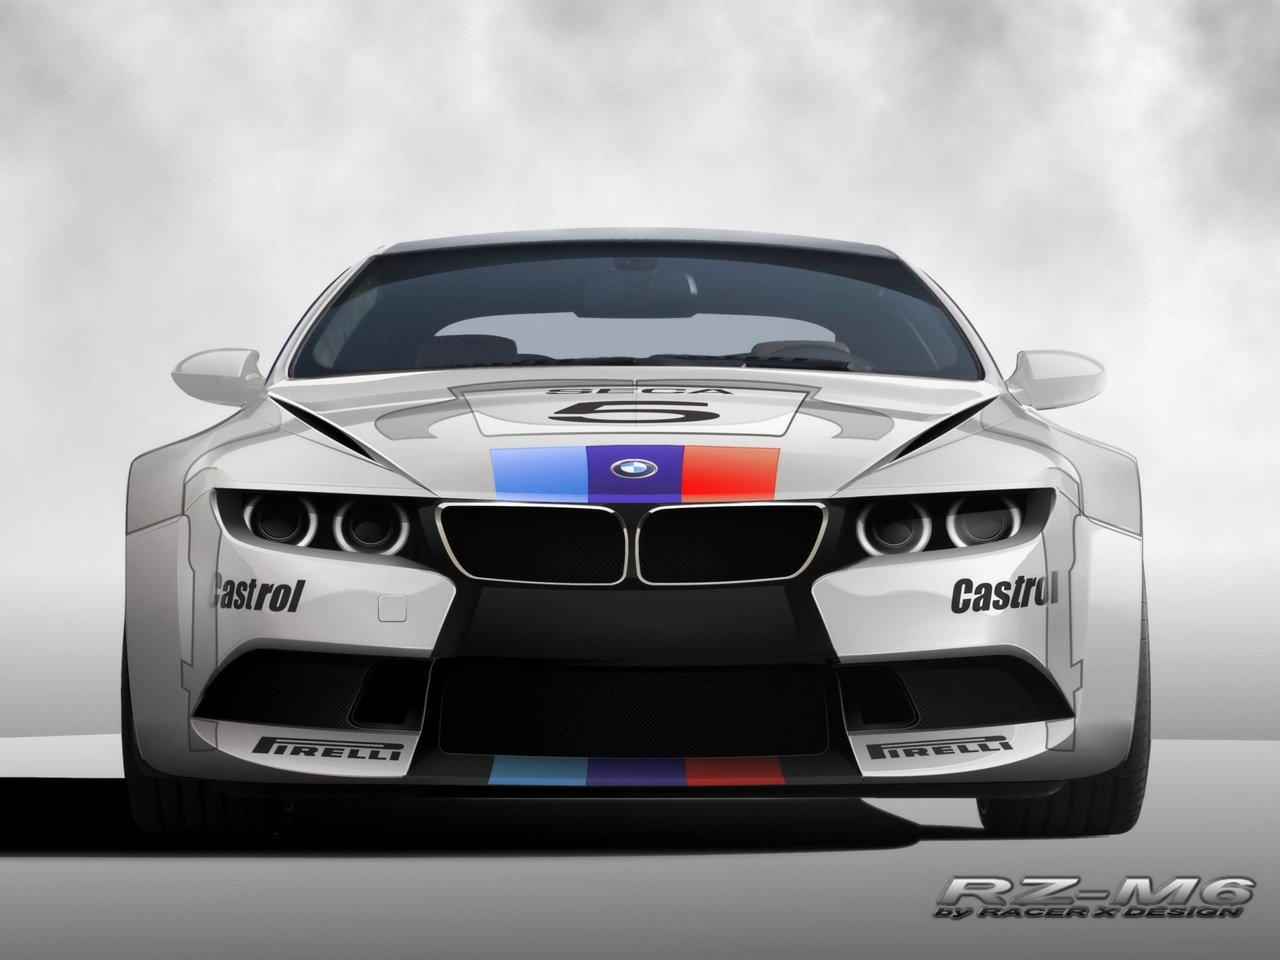 Free Download Galaxy Pics Bmw Sports Cars Wallpapers 1280x960 For Your Desktop Mobile Tablet Explore 76 Sport Cars Wallpaper Muscle Car Wallpaper Sports Cars Wallpapers Hd Hd Car Wallpaper